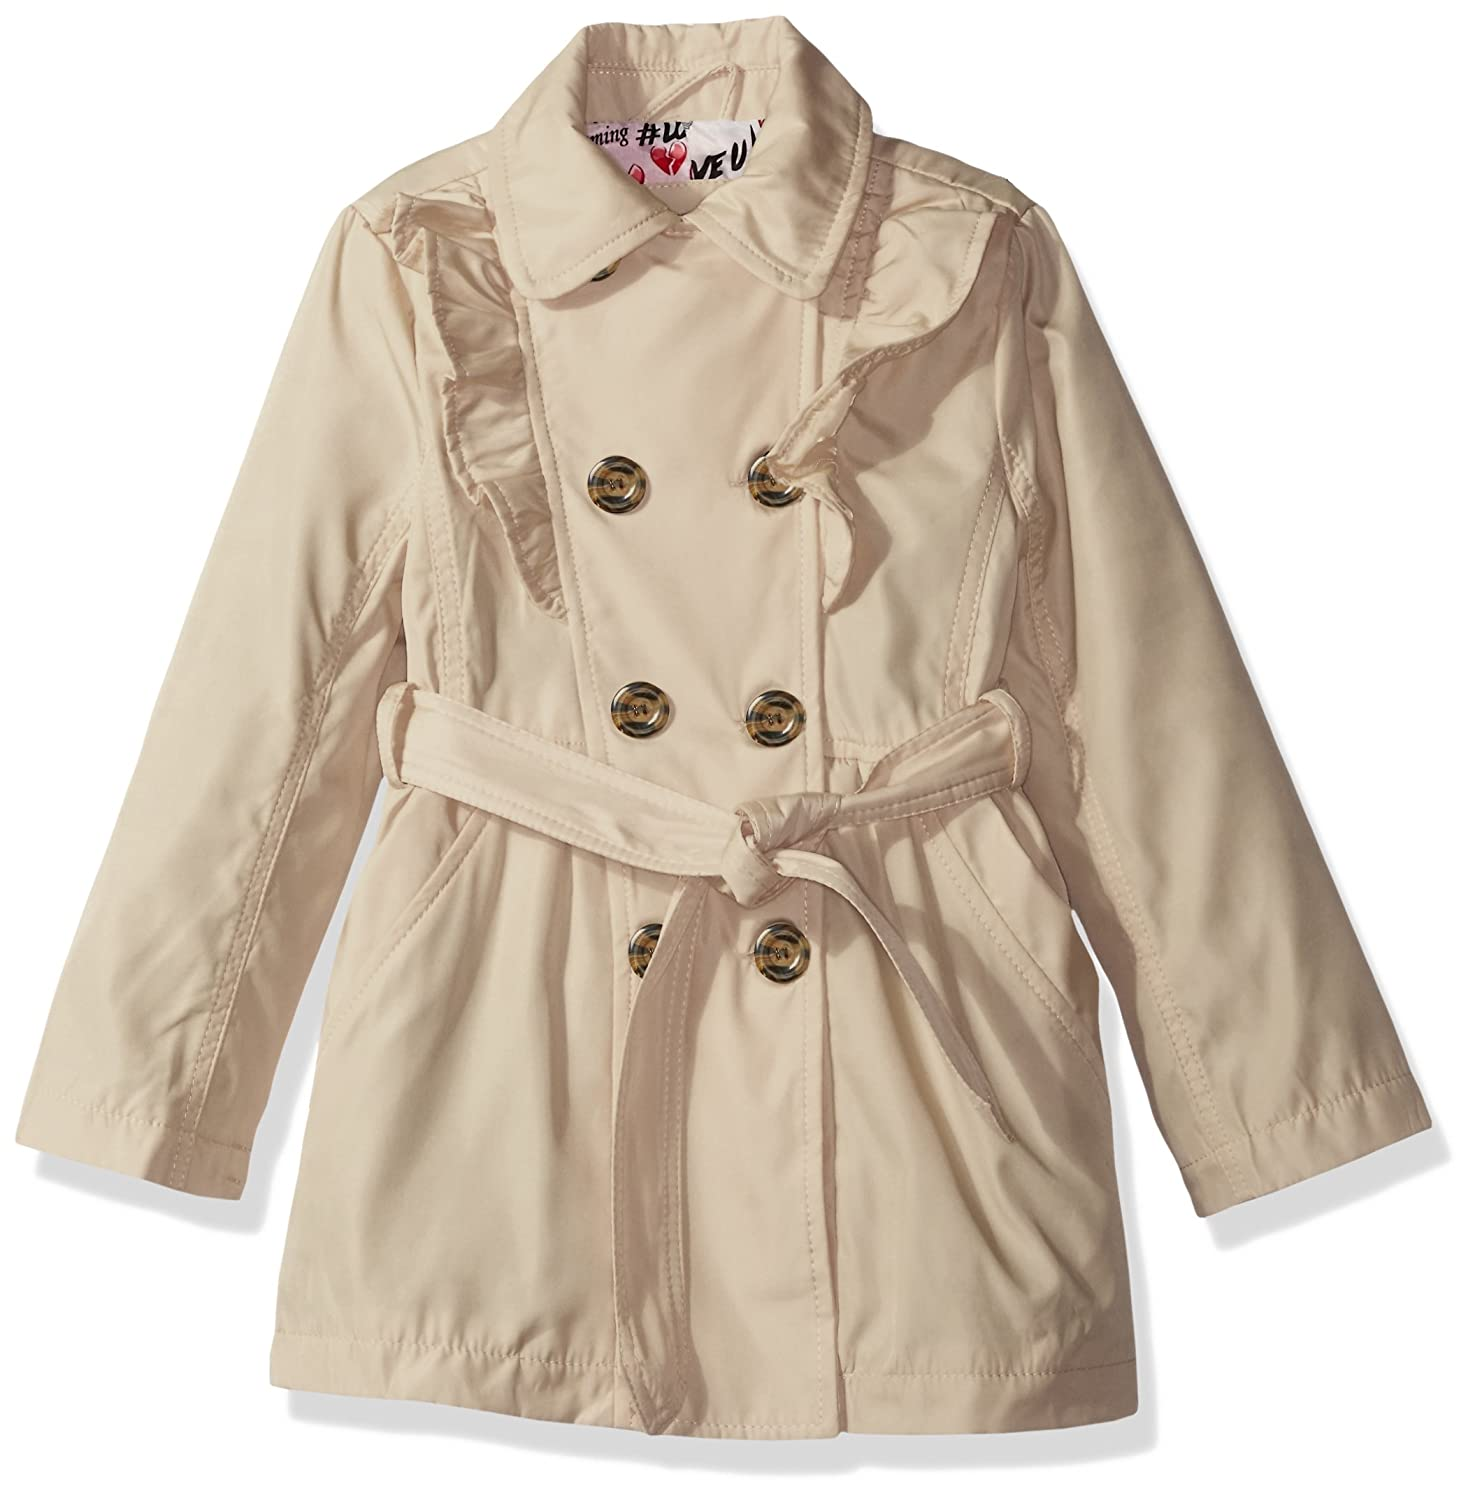 Urban Republic Girls' Toddler Fave Trench Coat, Baby Pink, 2T 5785TLR-125